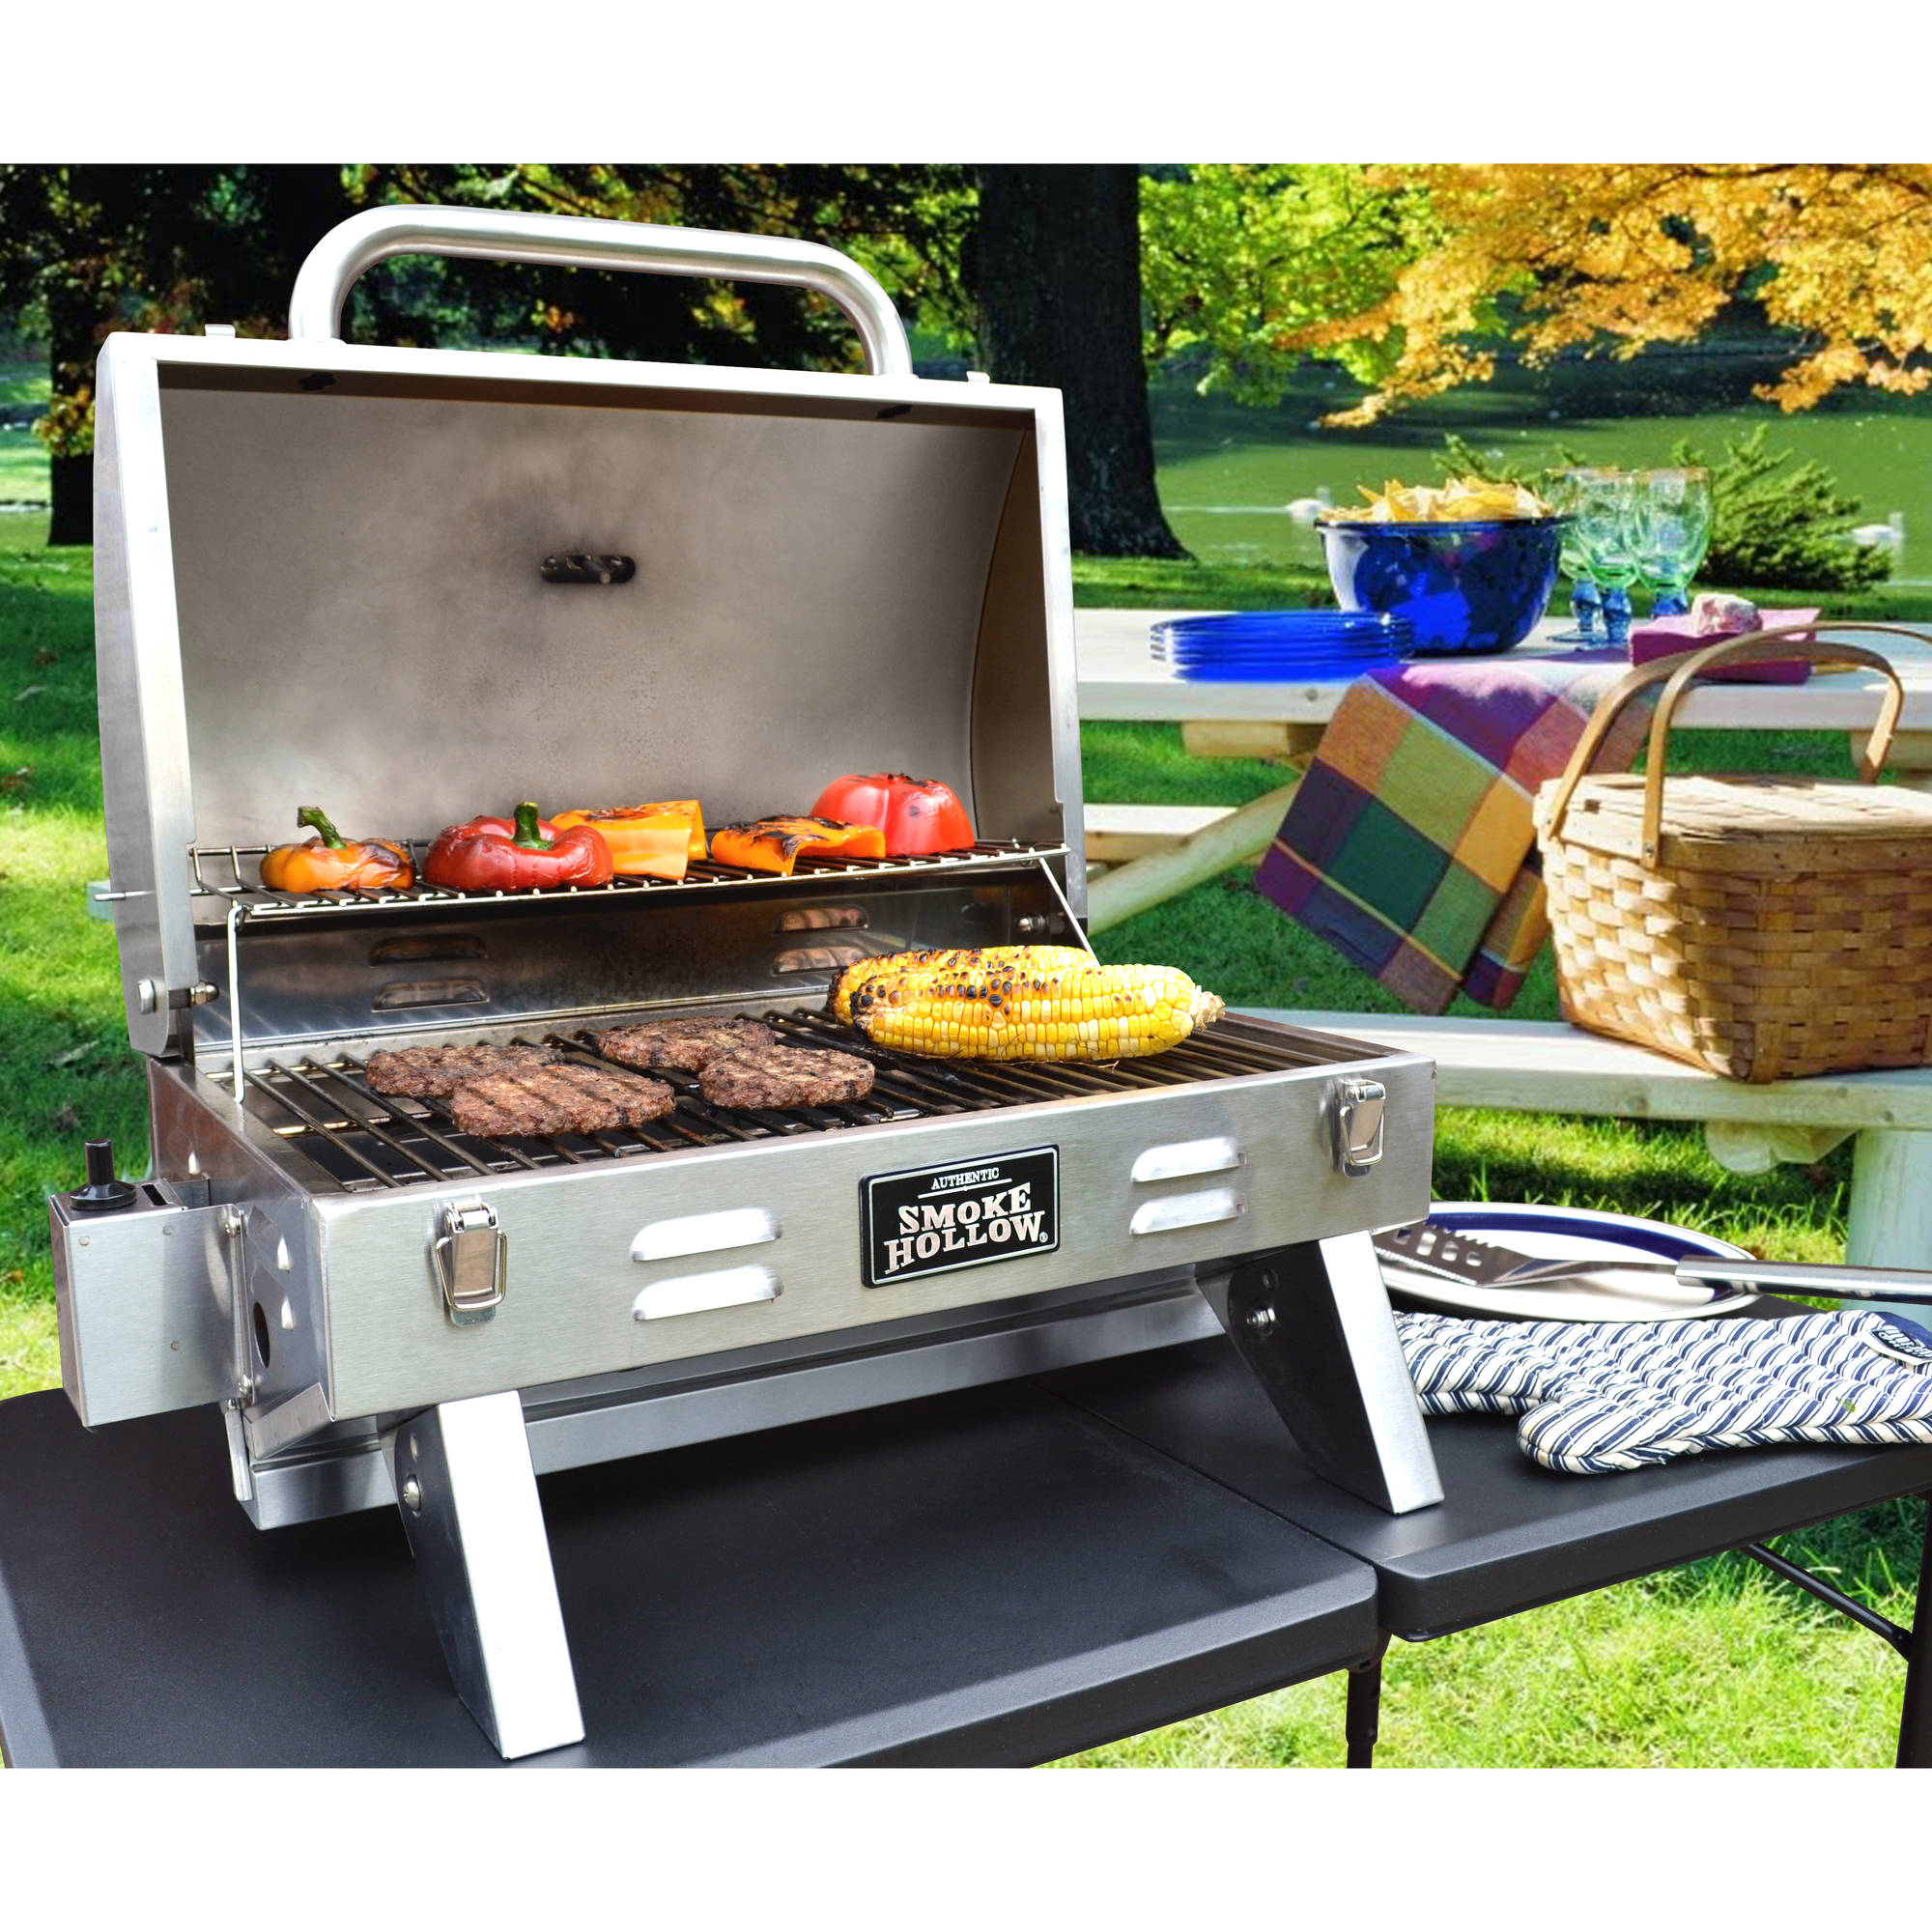 Stainless Steel Tailgate U0026amp; Portable Grill   Walmart.com